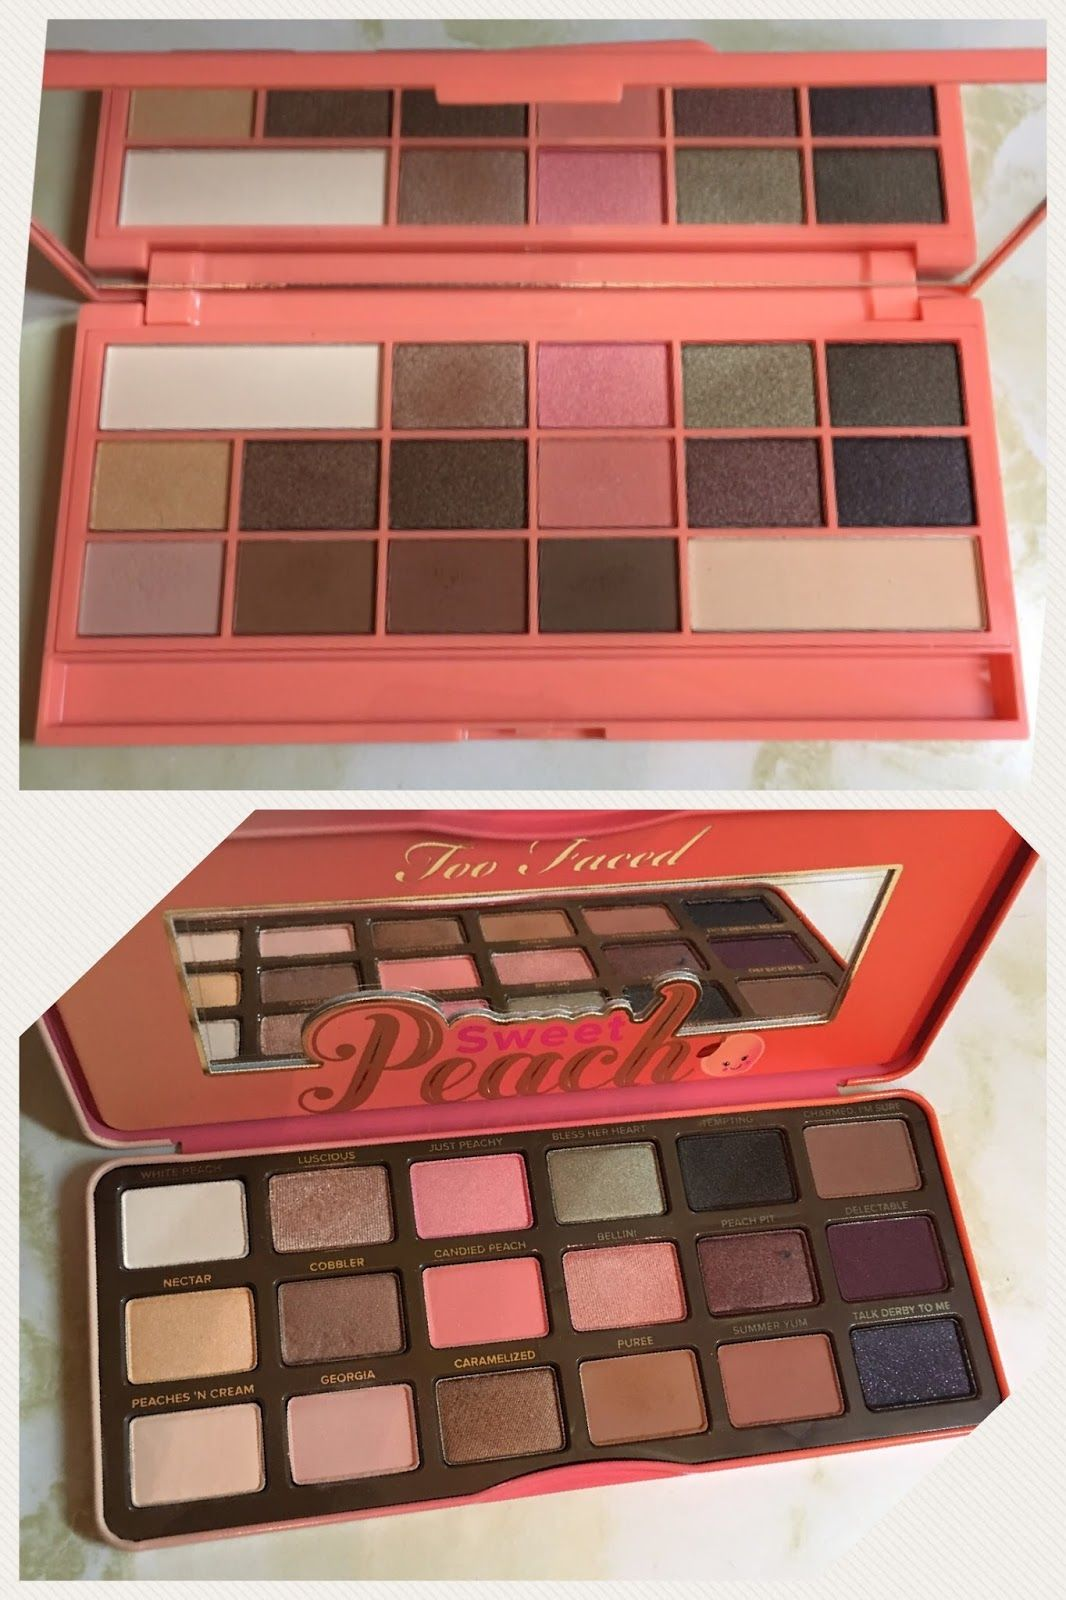 Too Faced Peach Palette Dupe Makeup Revolution Chocolate And Peaches